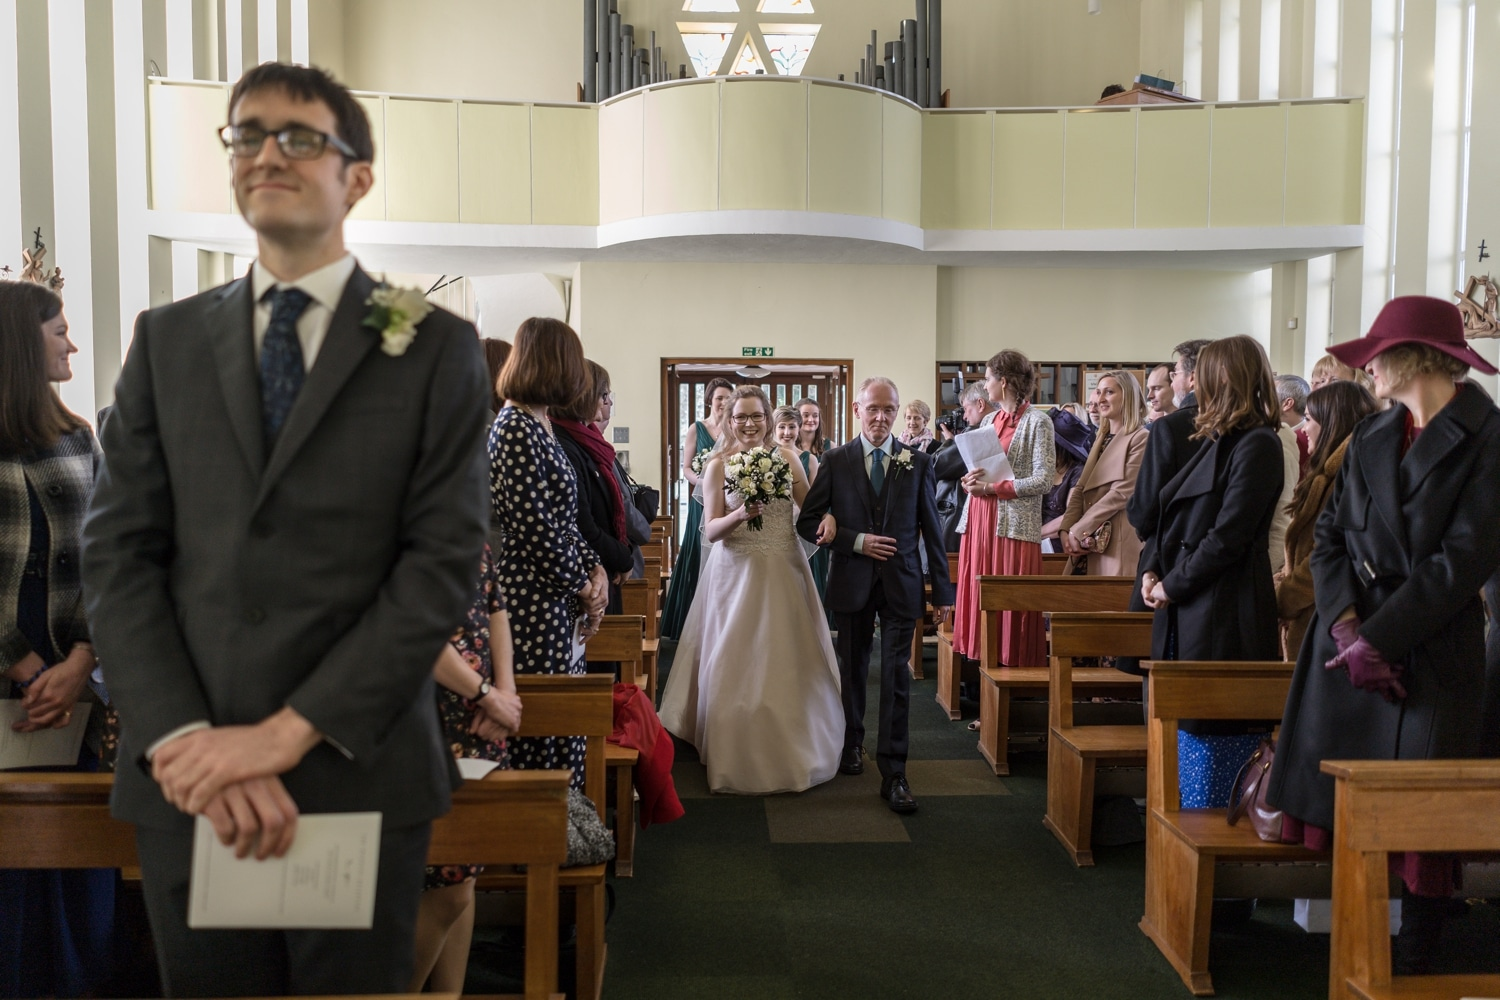 Bride and father walk up aisle at St Brigid's Church, Cardiff